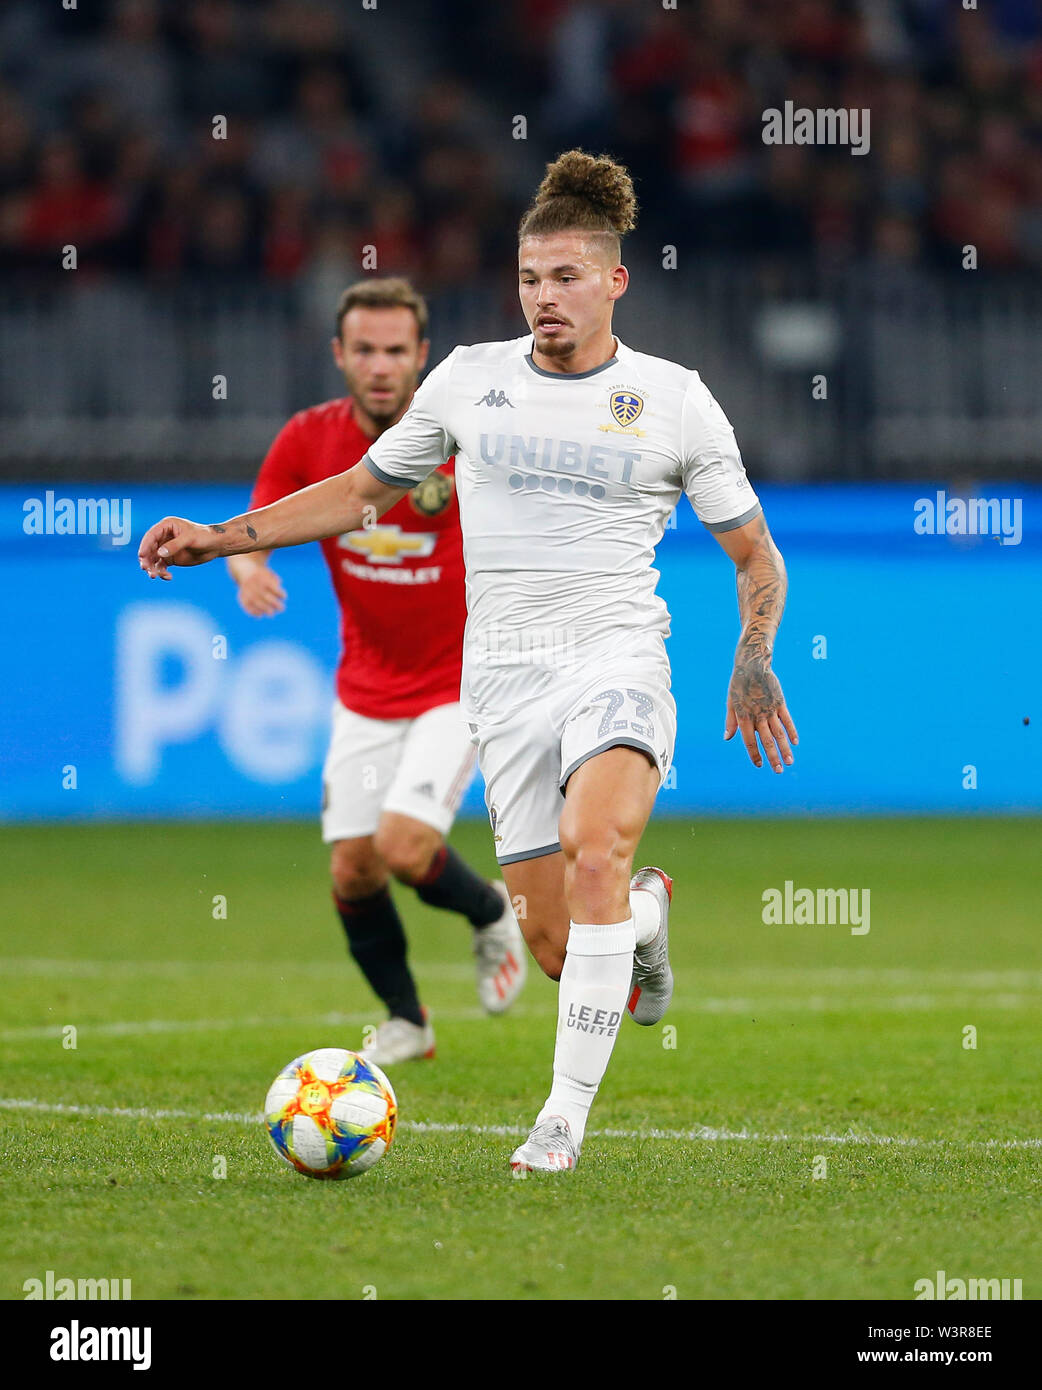 Optus Stadium, Burswood, Perth, W Australia. 17th July 2019. Manchester United versus Leeds United; pre-season tour; Kalvin Phillips of Leeds United breaks with the ball through the middle Credit: Action Plus Sports Images/Alamy Live News Stock Photo